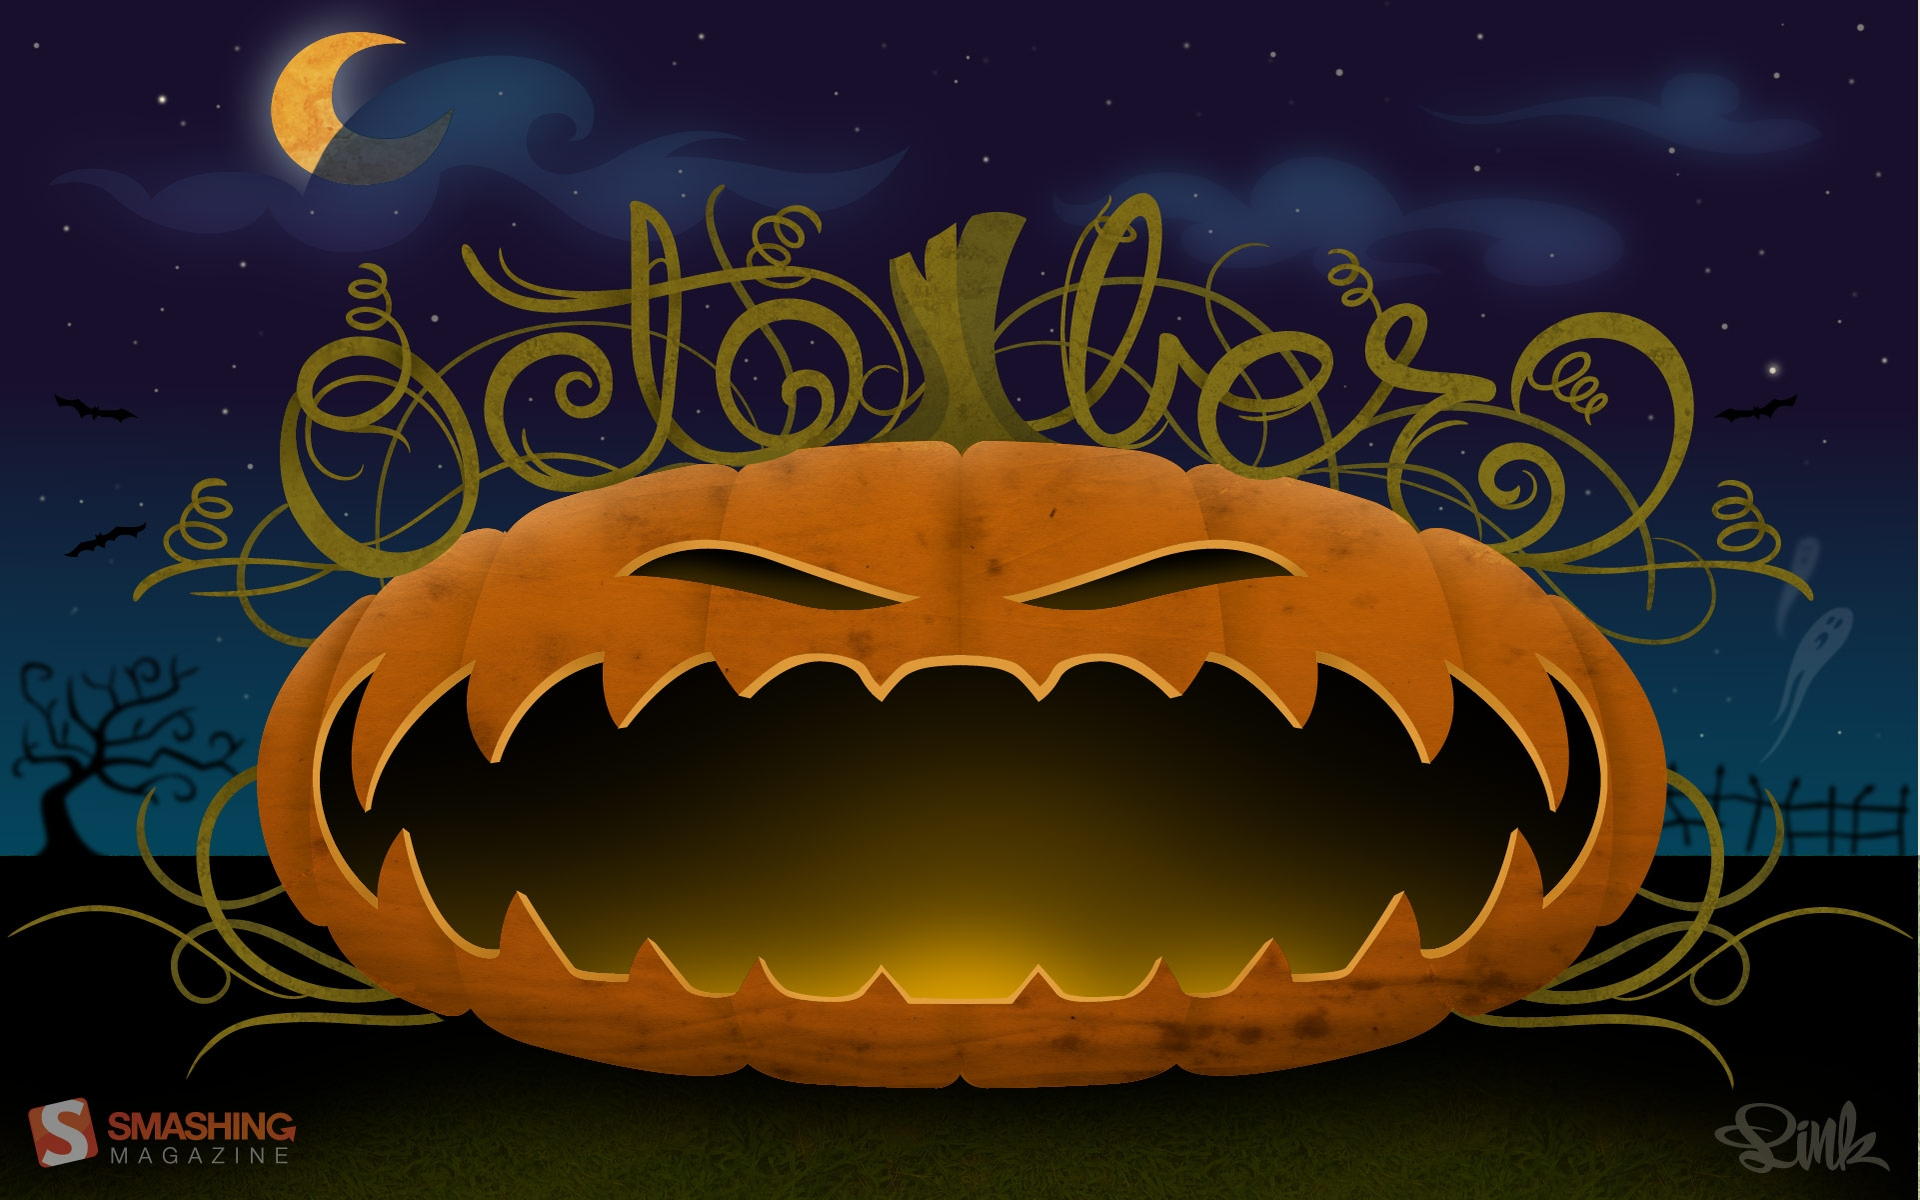 40 hq eye catching halloween wallpapers free download modny73 - Free Halloween Pictures To Download